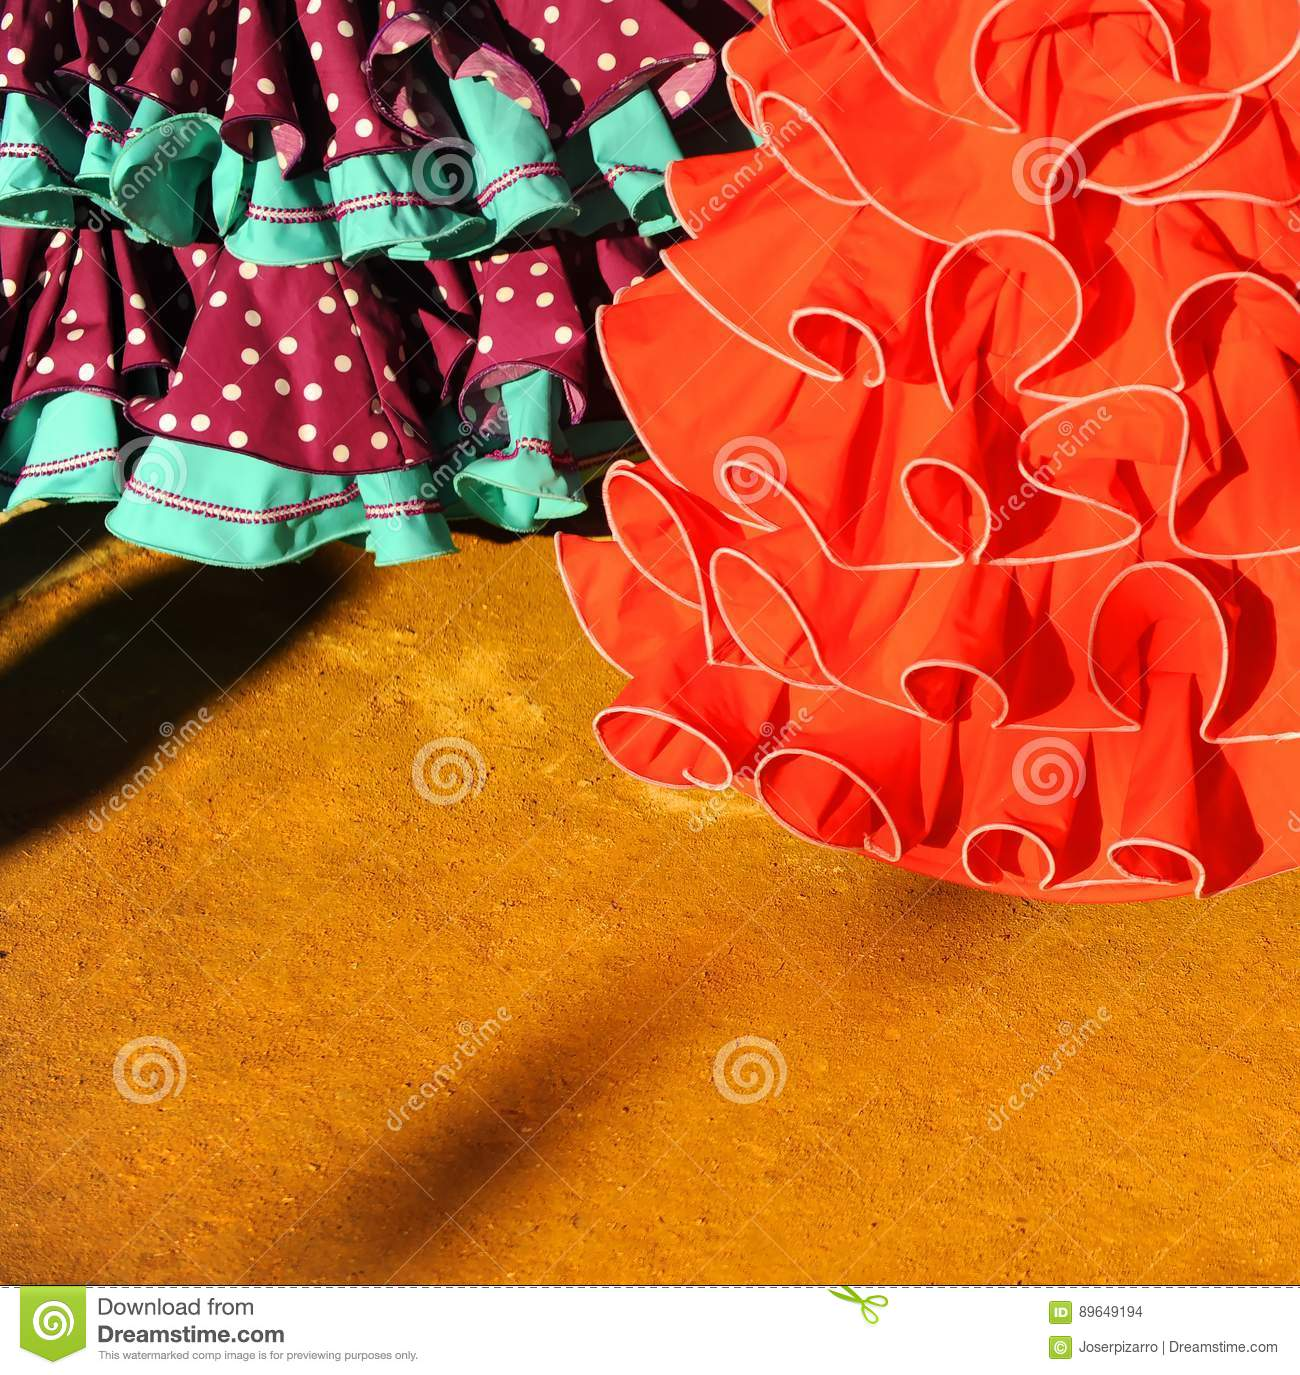 b7eef5b2a121 Andalusian woman wearing flamenco dress during the Feria of Sevilla,  Andalusia, Spain